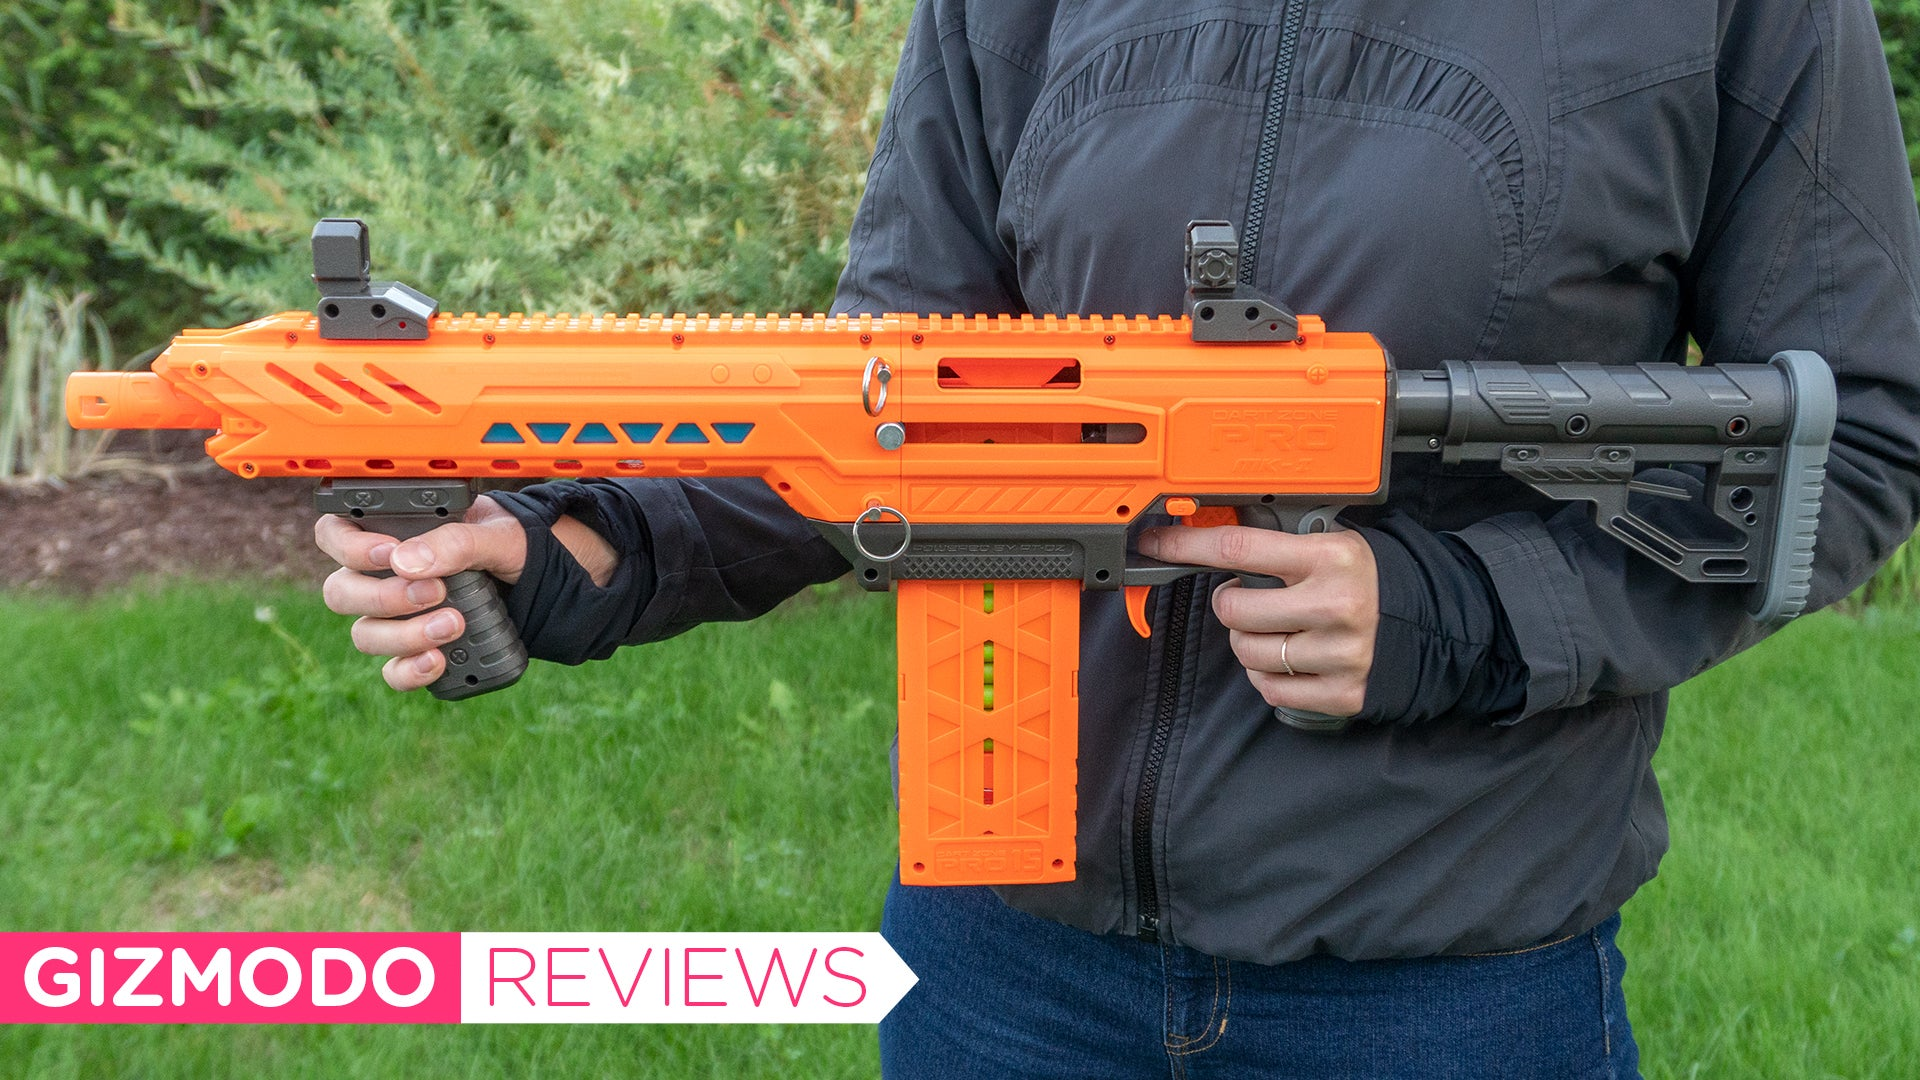 This $260 Dart Blaster Is More Powerful Than Anything Nerf's Ever Made